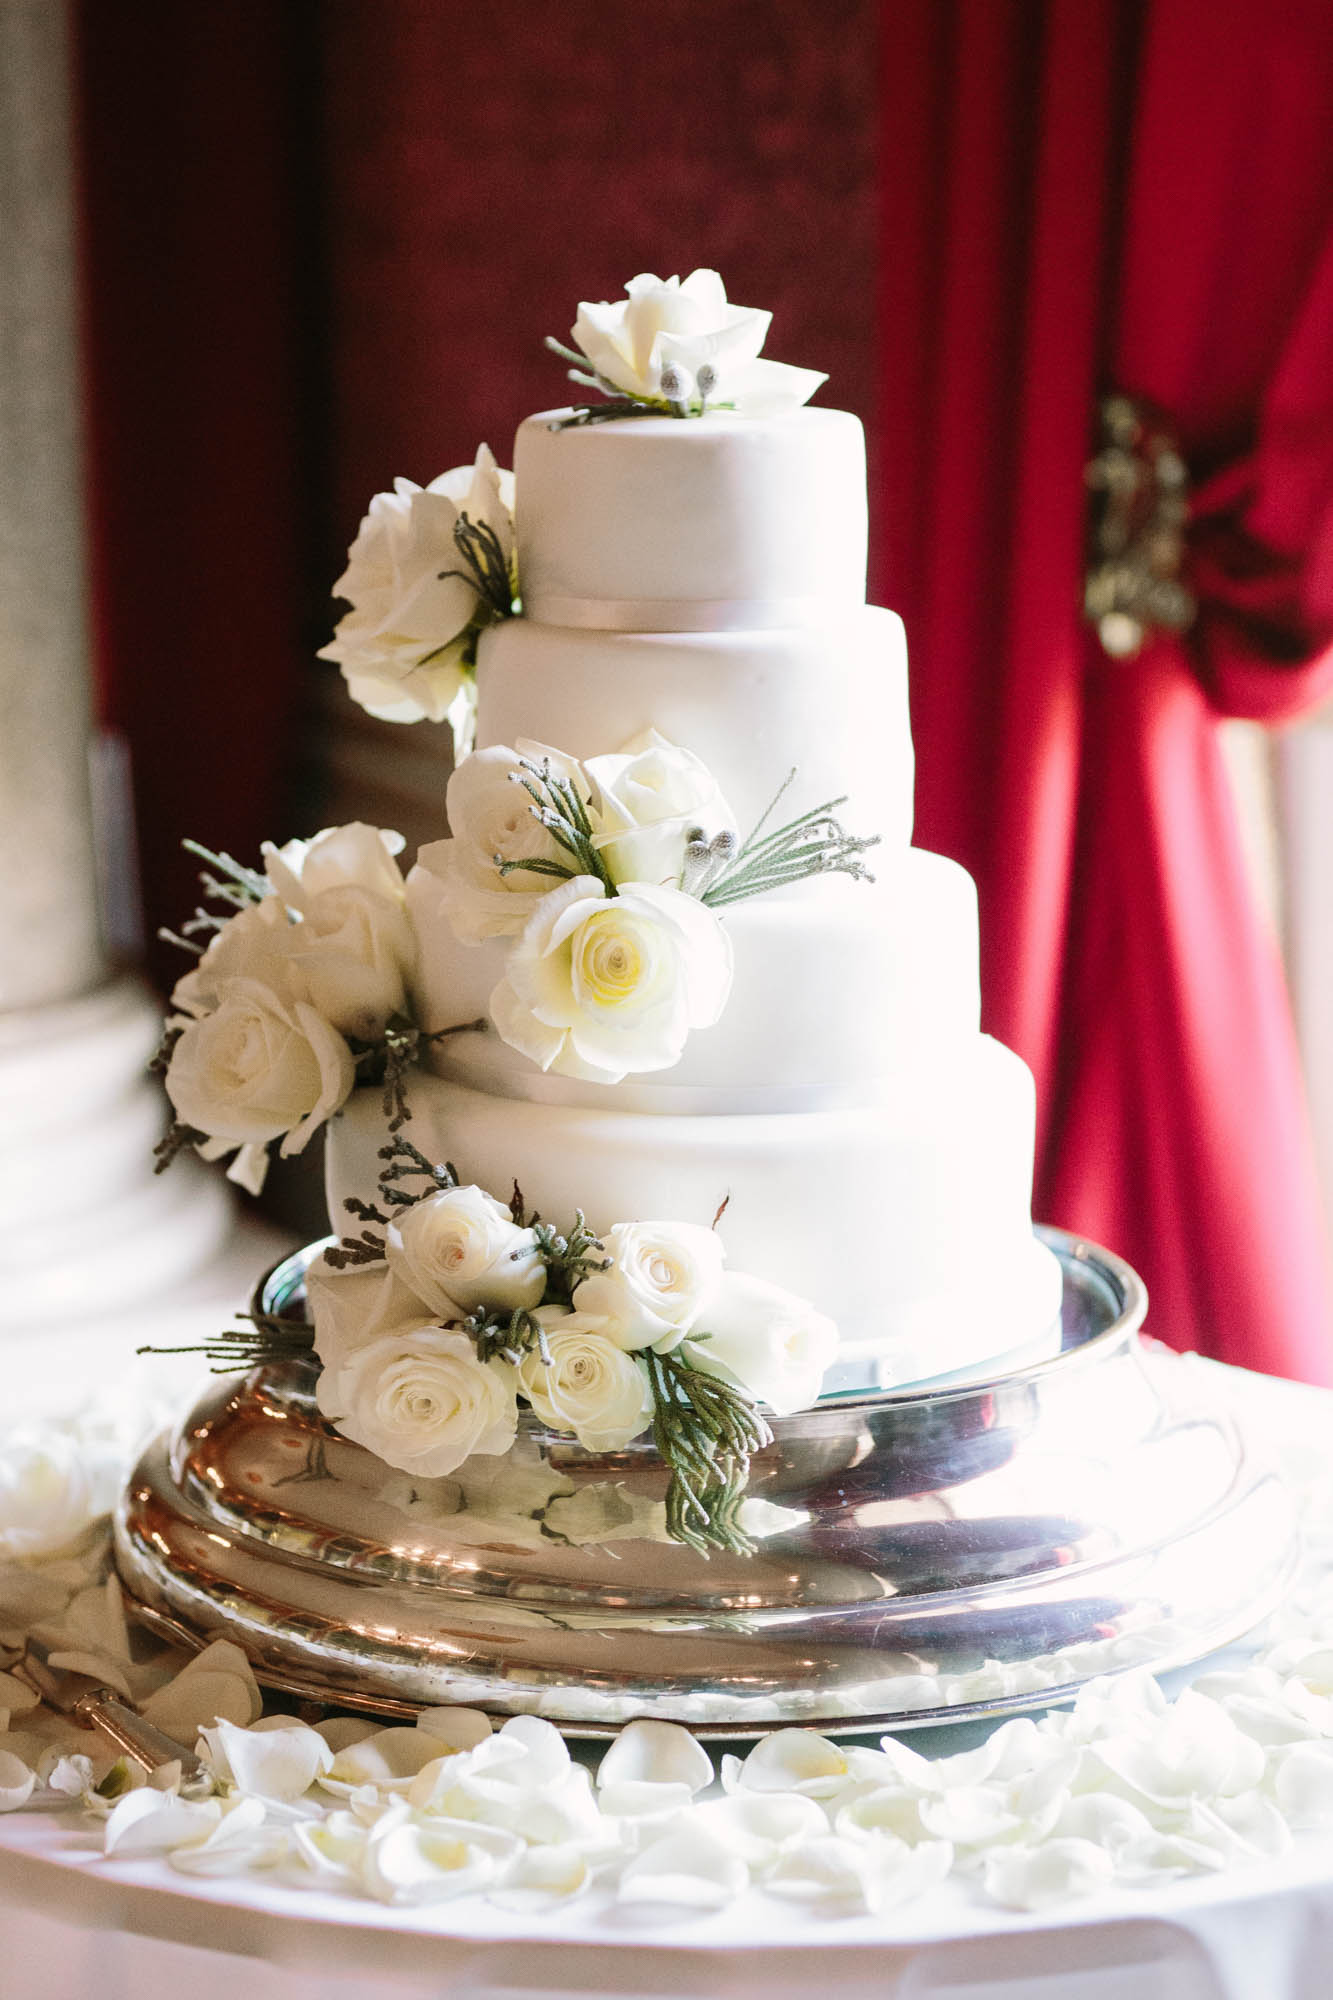 White three tier wedding cake decorated with white roses at Goodwood House